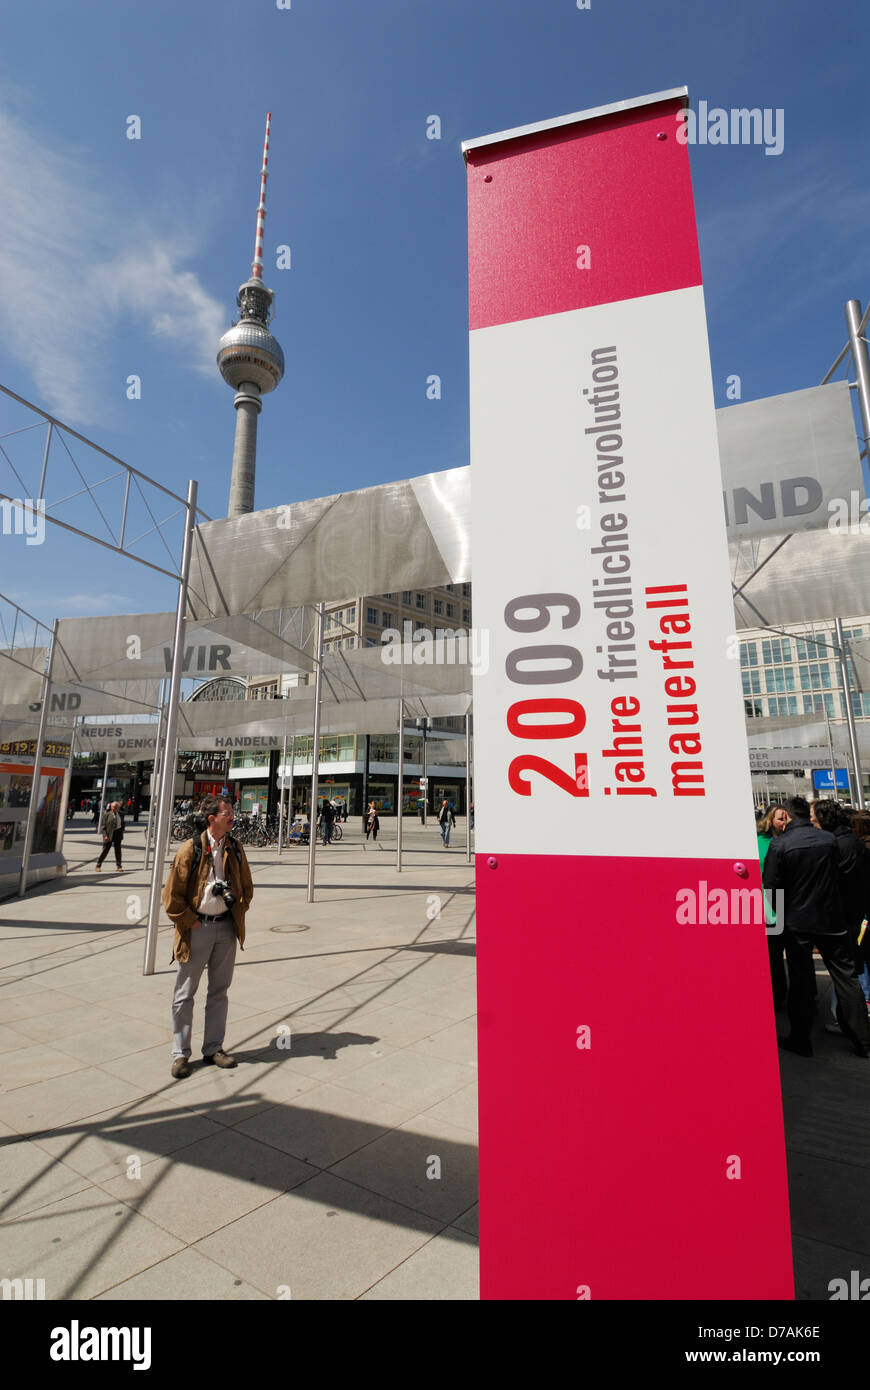 Exhibition on Alexanderplatz commemorating 20 years since the fall of the Berlin wall, Berlin Germany. Stock Photo